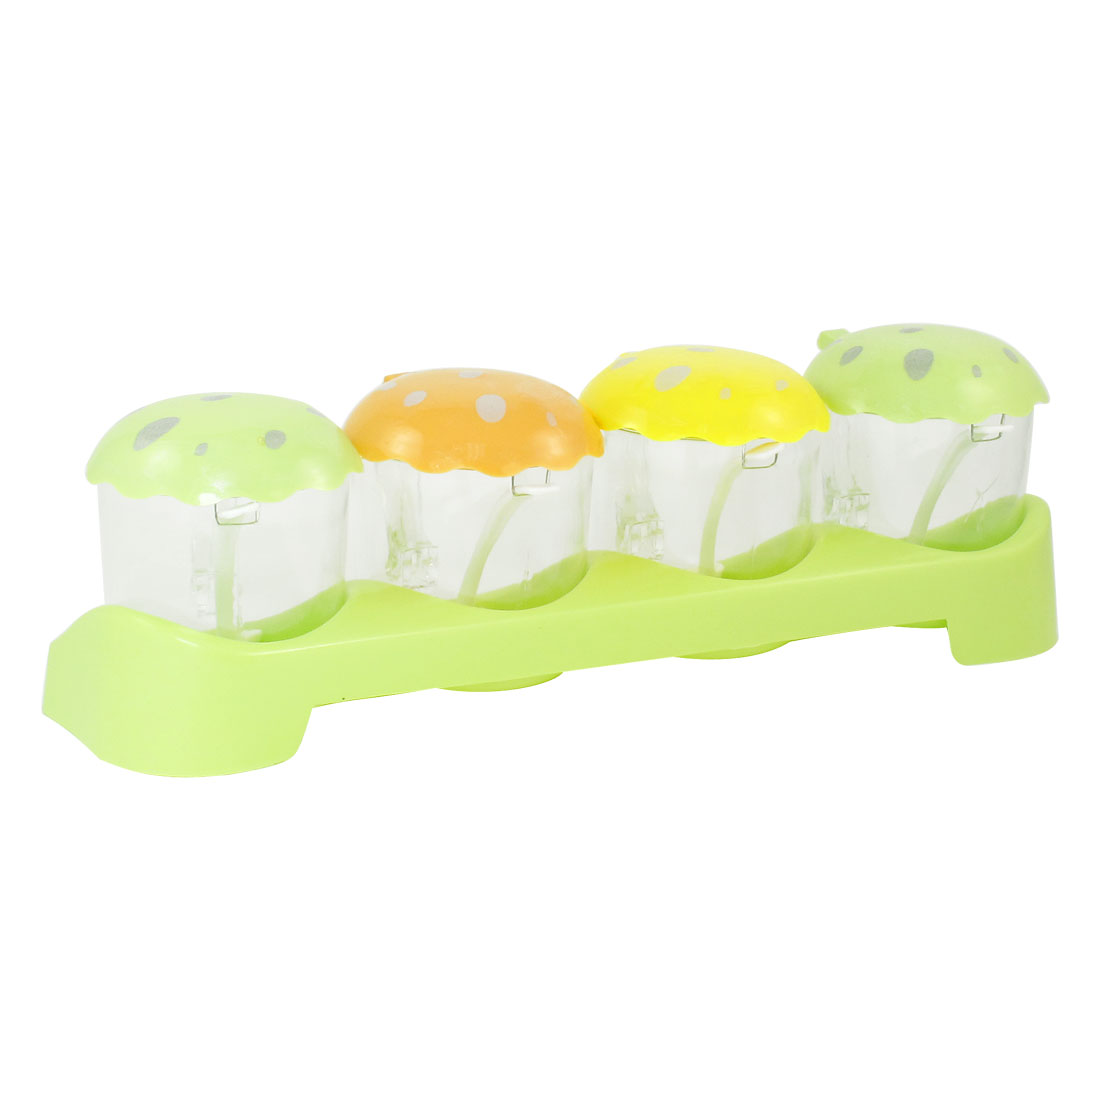 Green Base Plastic Mug 4 in 1 Spices Sugar Condiment Container Box Case Holder